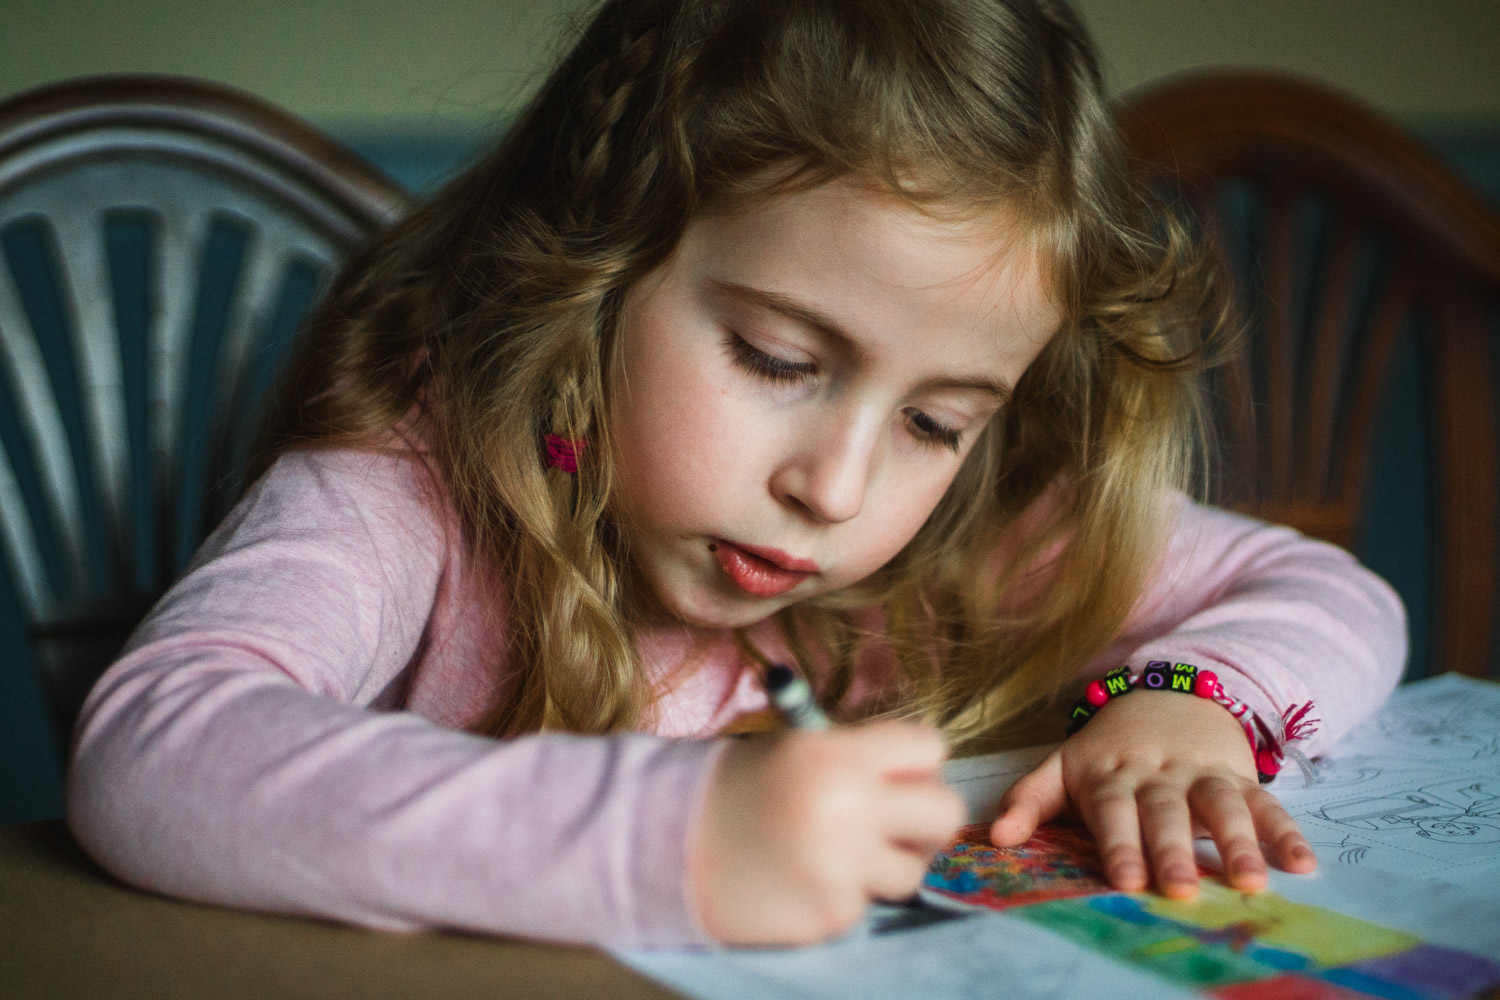 A little girl colors diligently with a crayon.